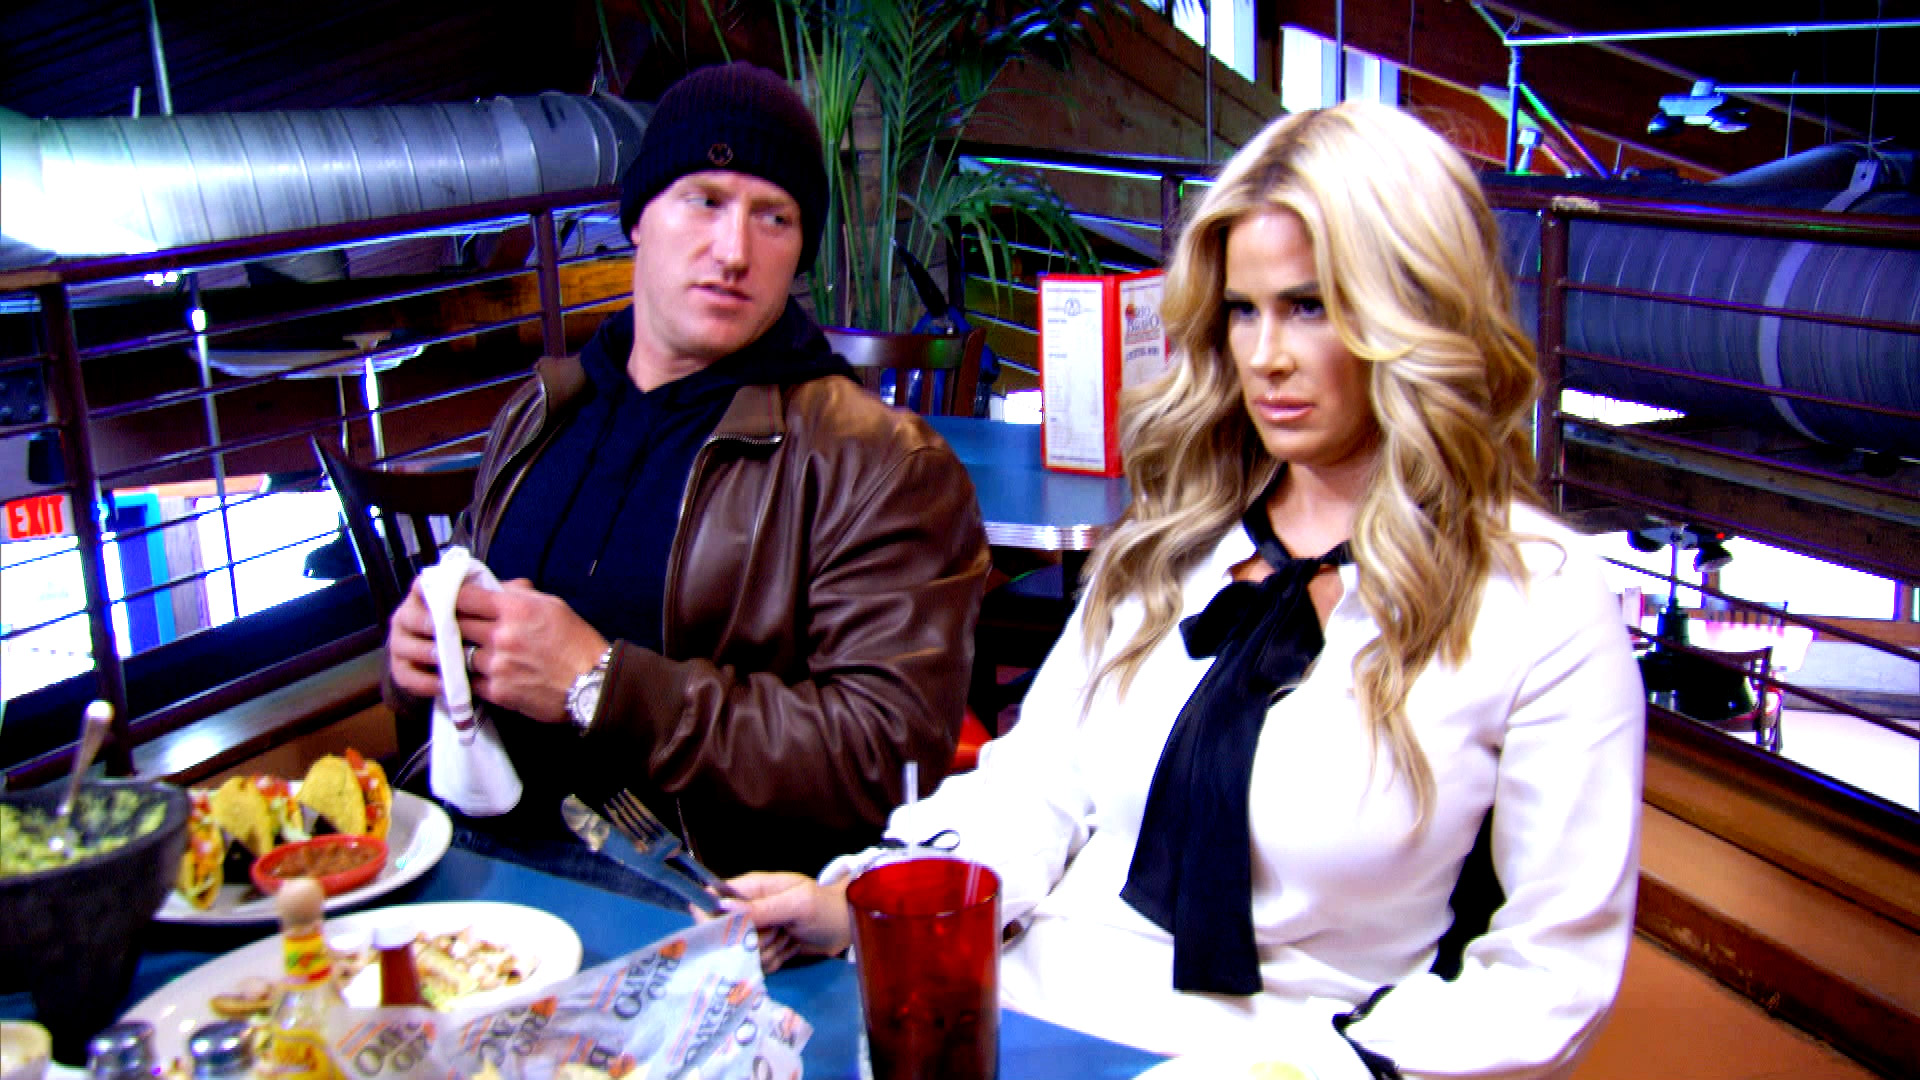 Kim Zolciack-Biermann's List of Acceptable Cities